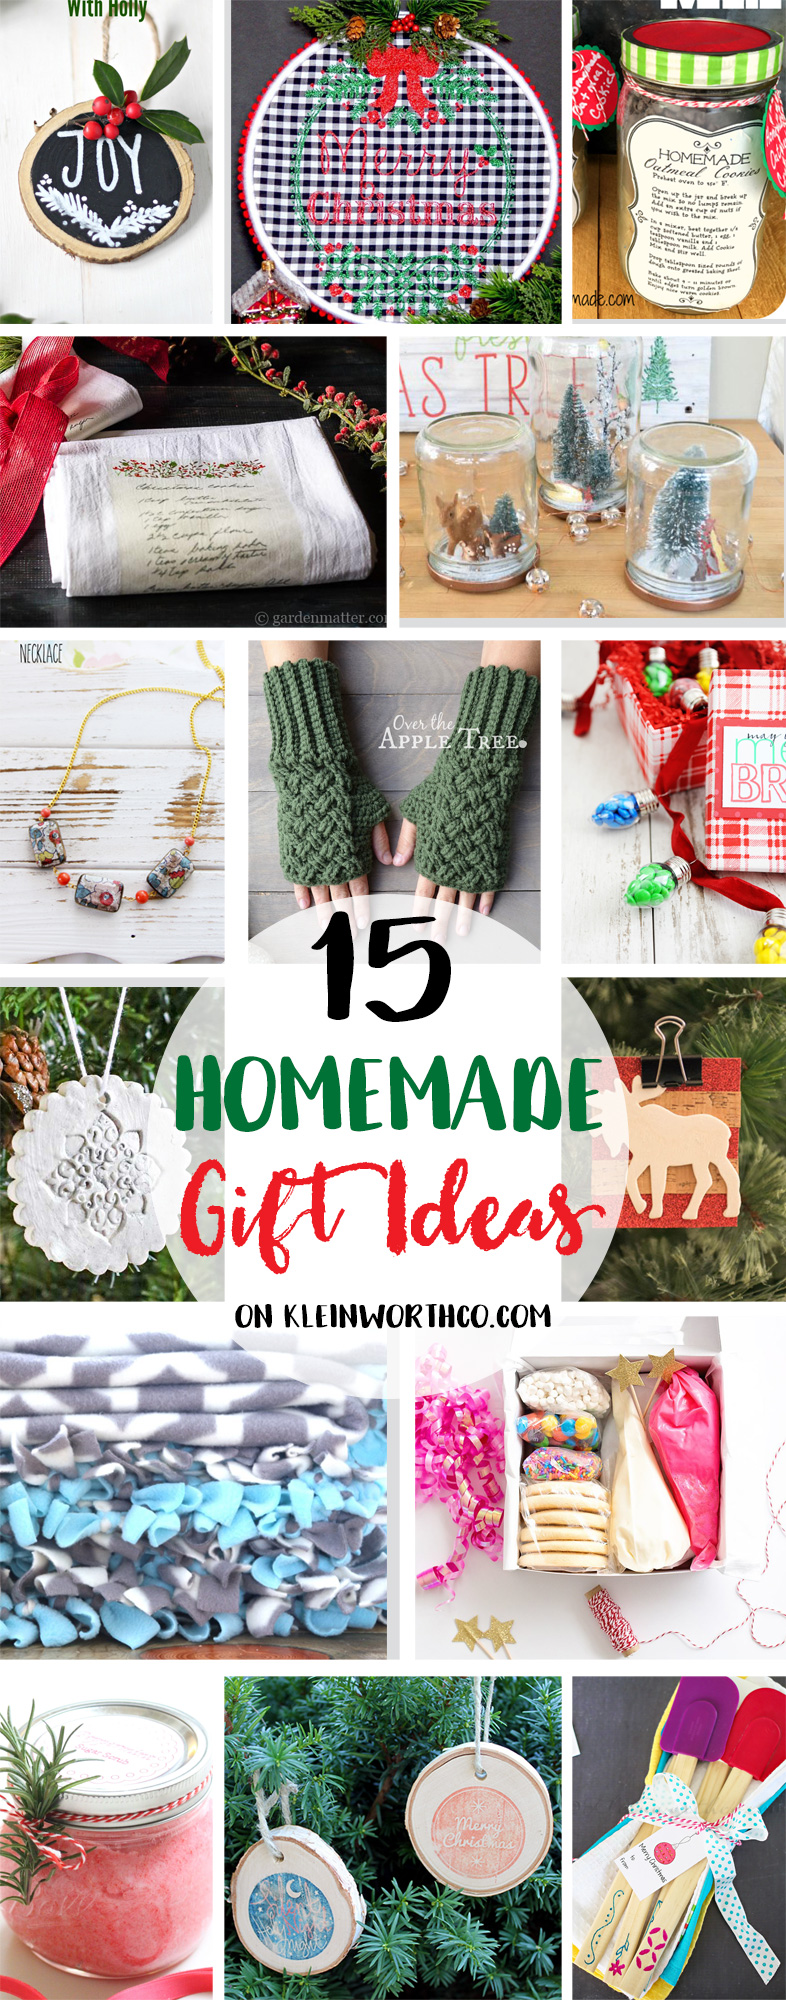 15 Homemade Gift Ideas